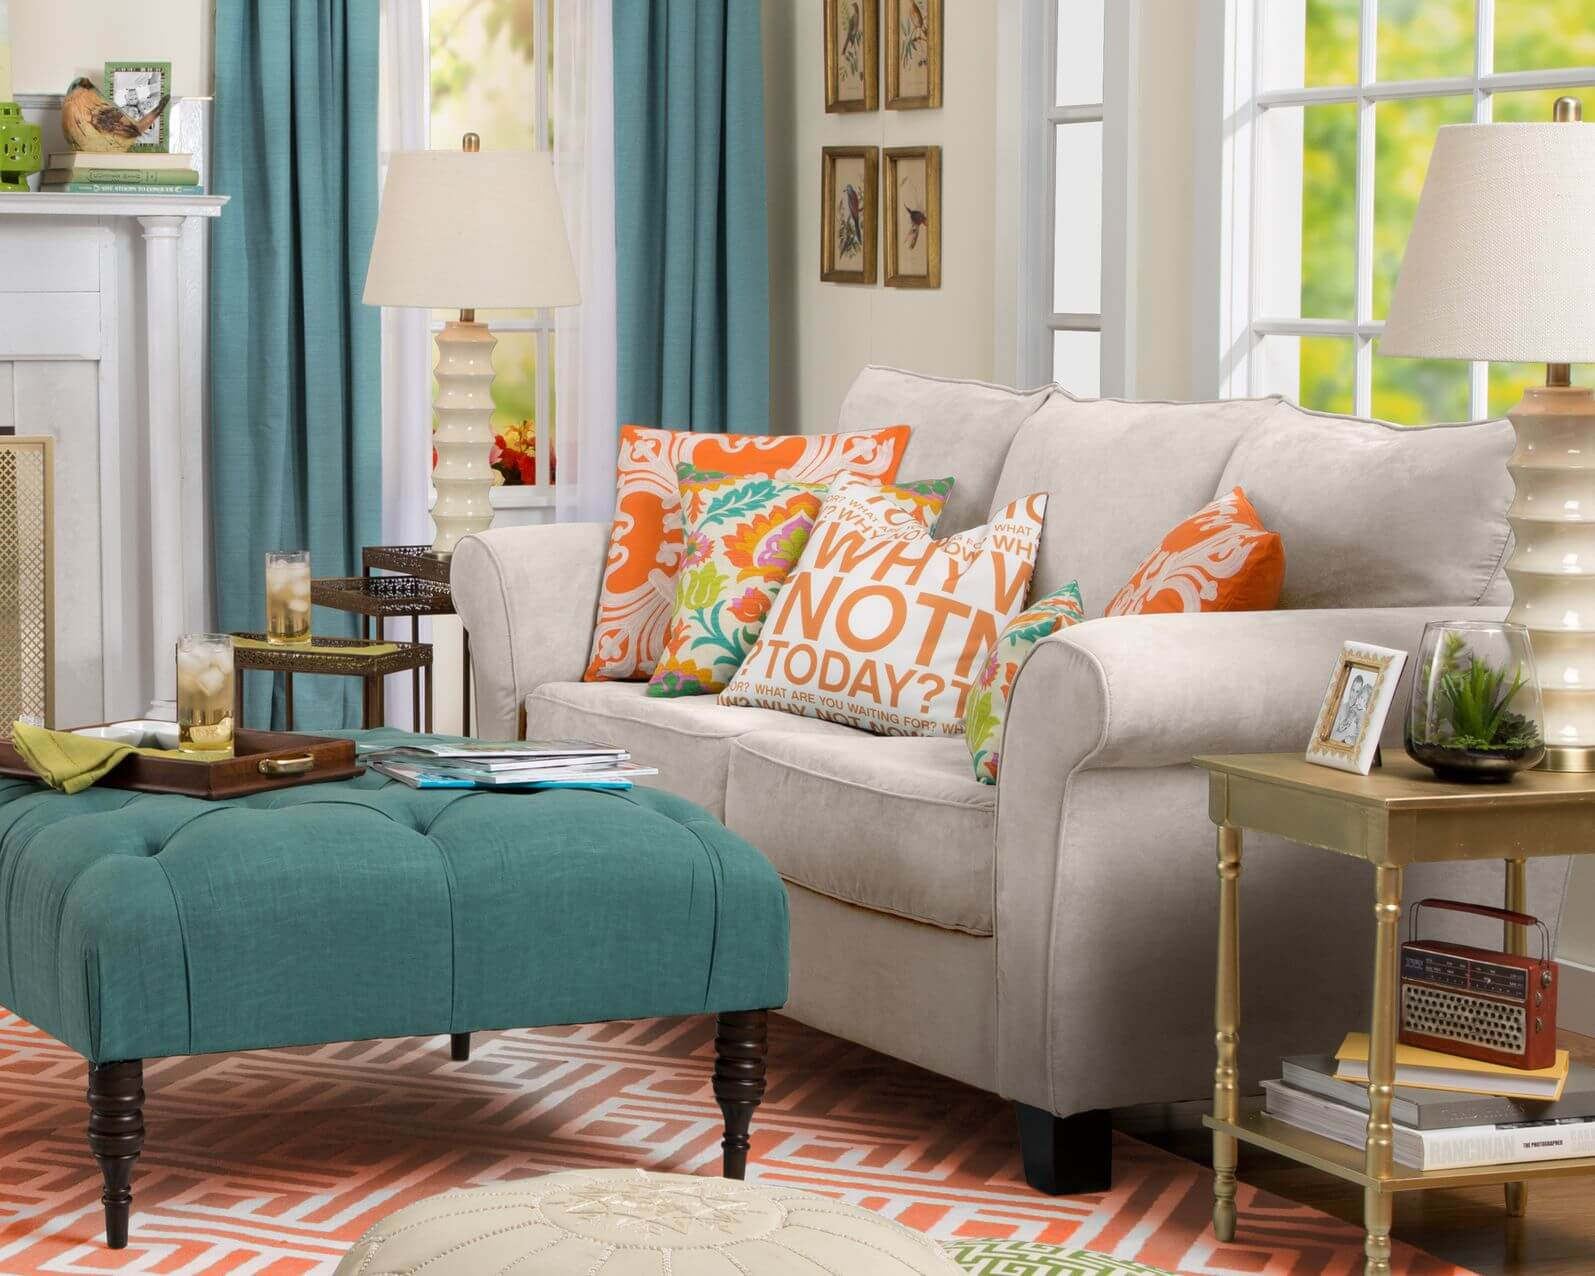 Bright Contrasting Color Patterns Throughout This Living Room